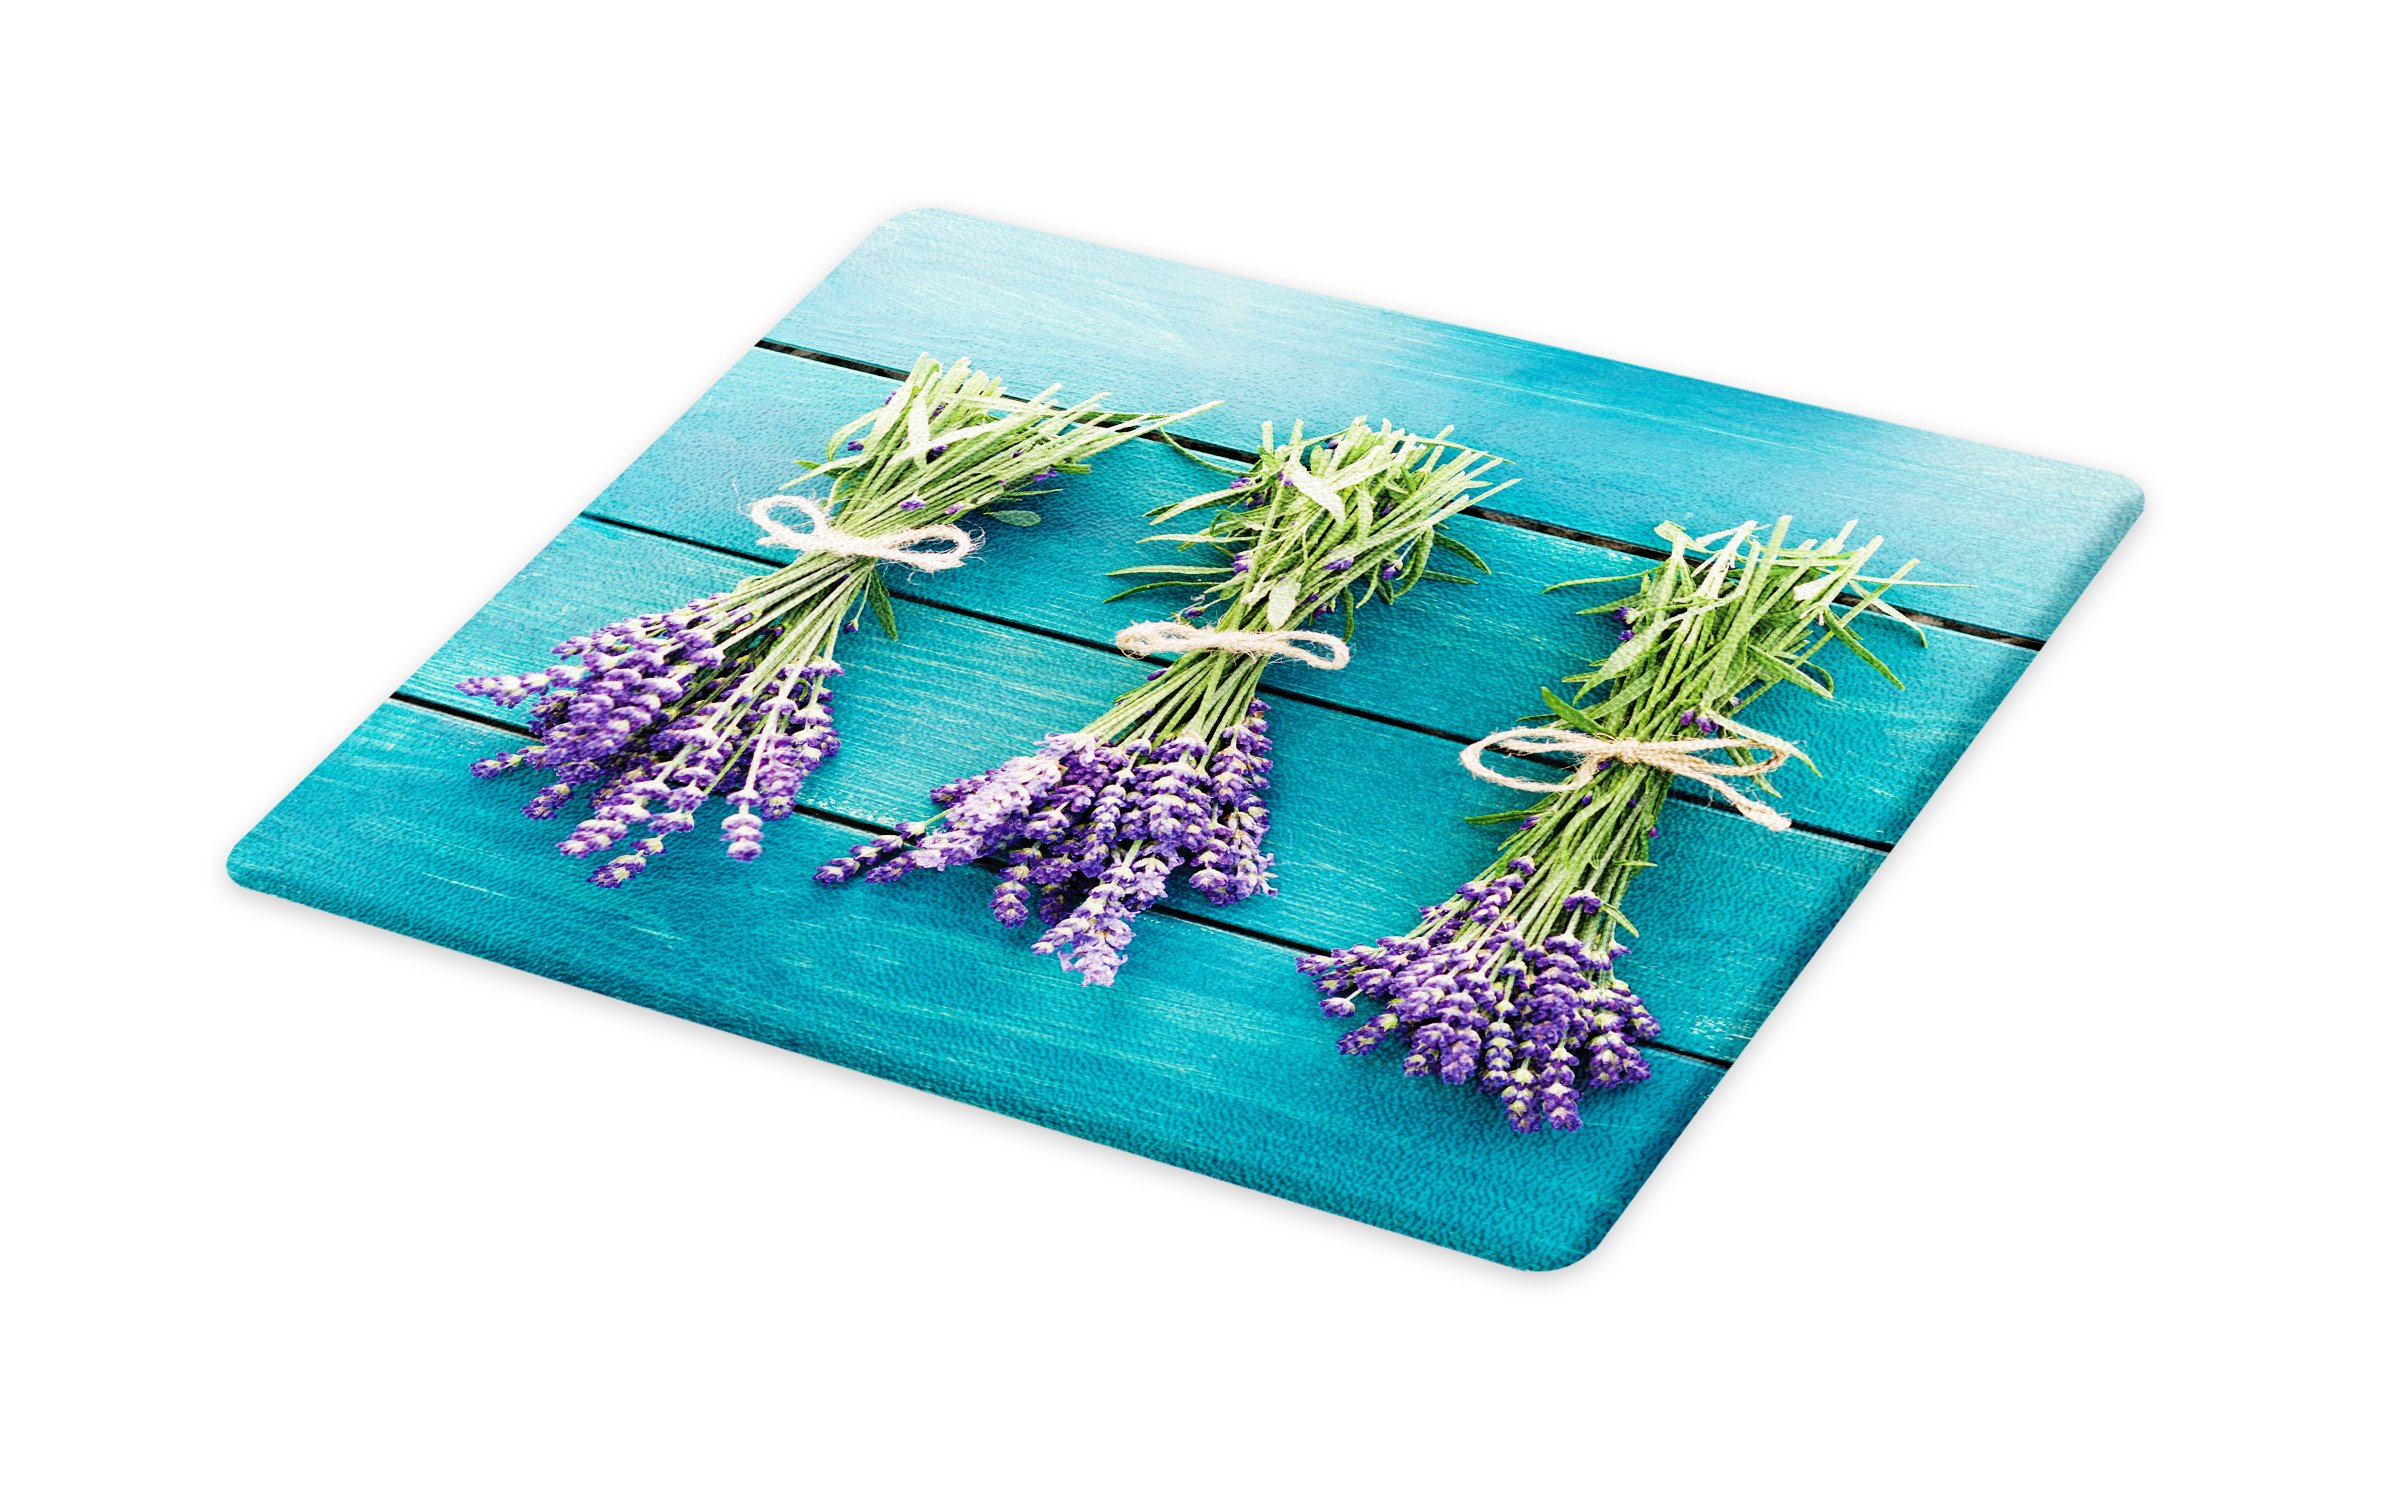 Lunarable Lavender Cutting Board, Fresh Lavender Bouquets on Blue Wooden Planks Rustic Relaxing Spa, Decorative Tempered Glass Cutting and Serving Board, Small Size, Sky Blue Lavender Green